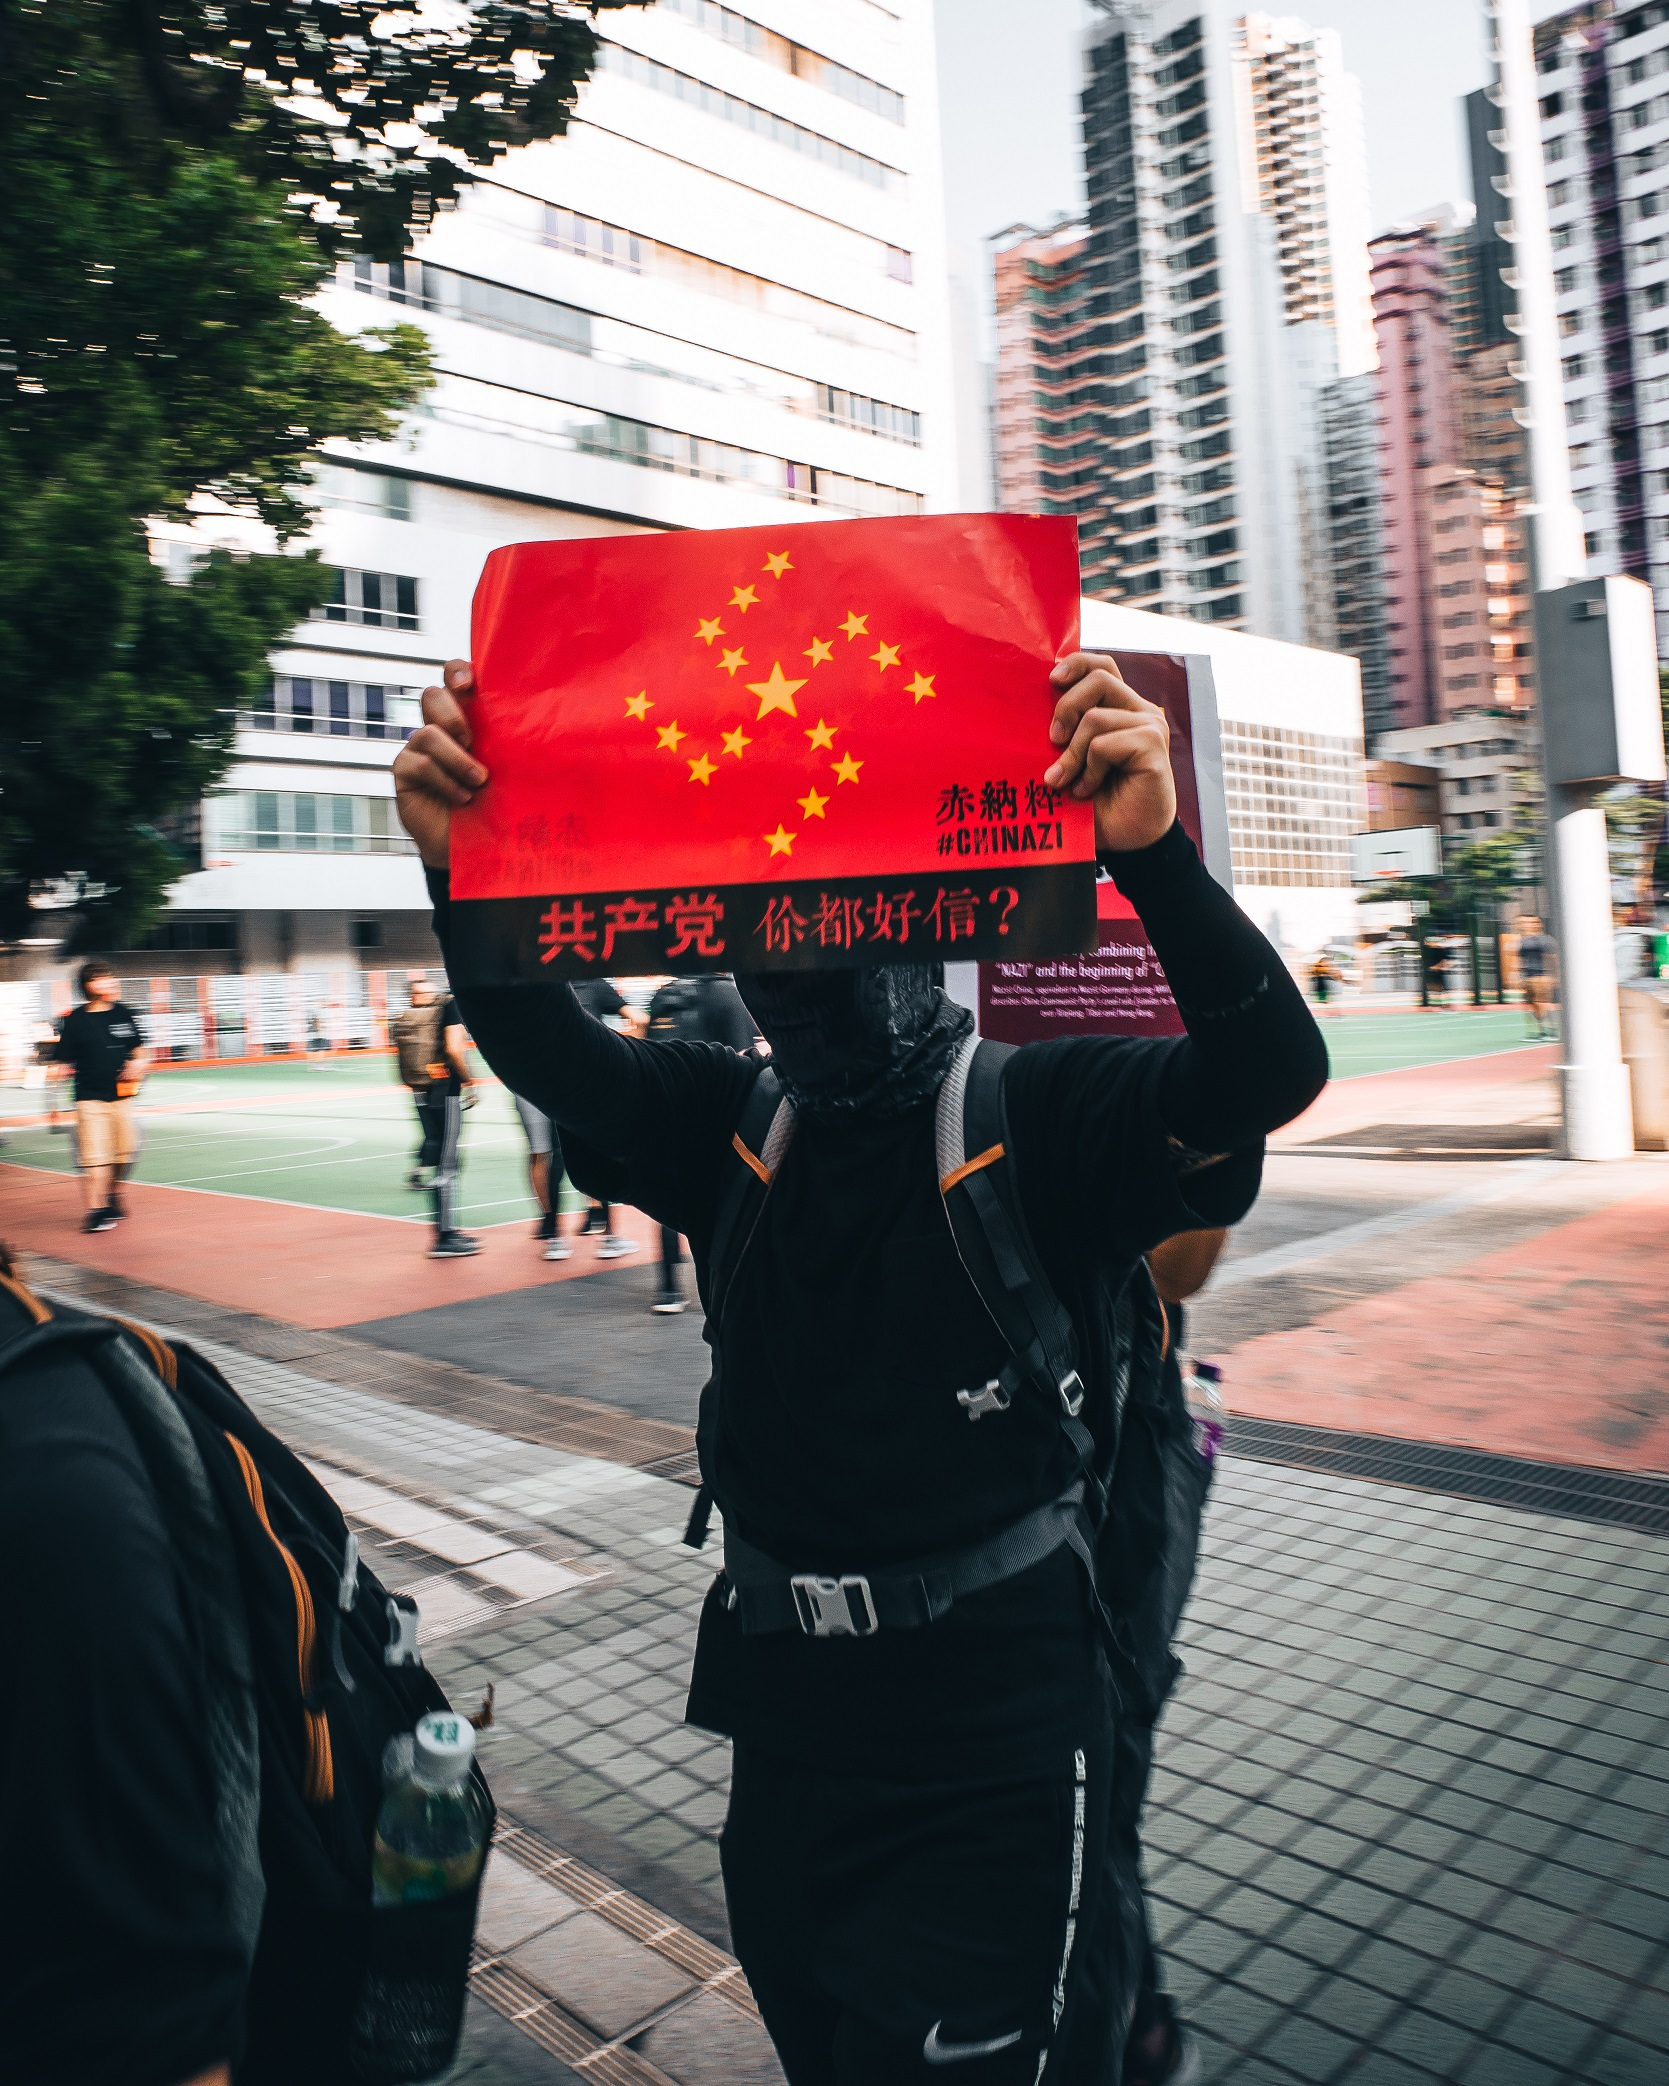 Male protester holding Chinazi protest sign